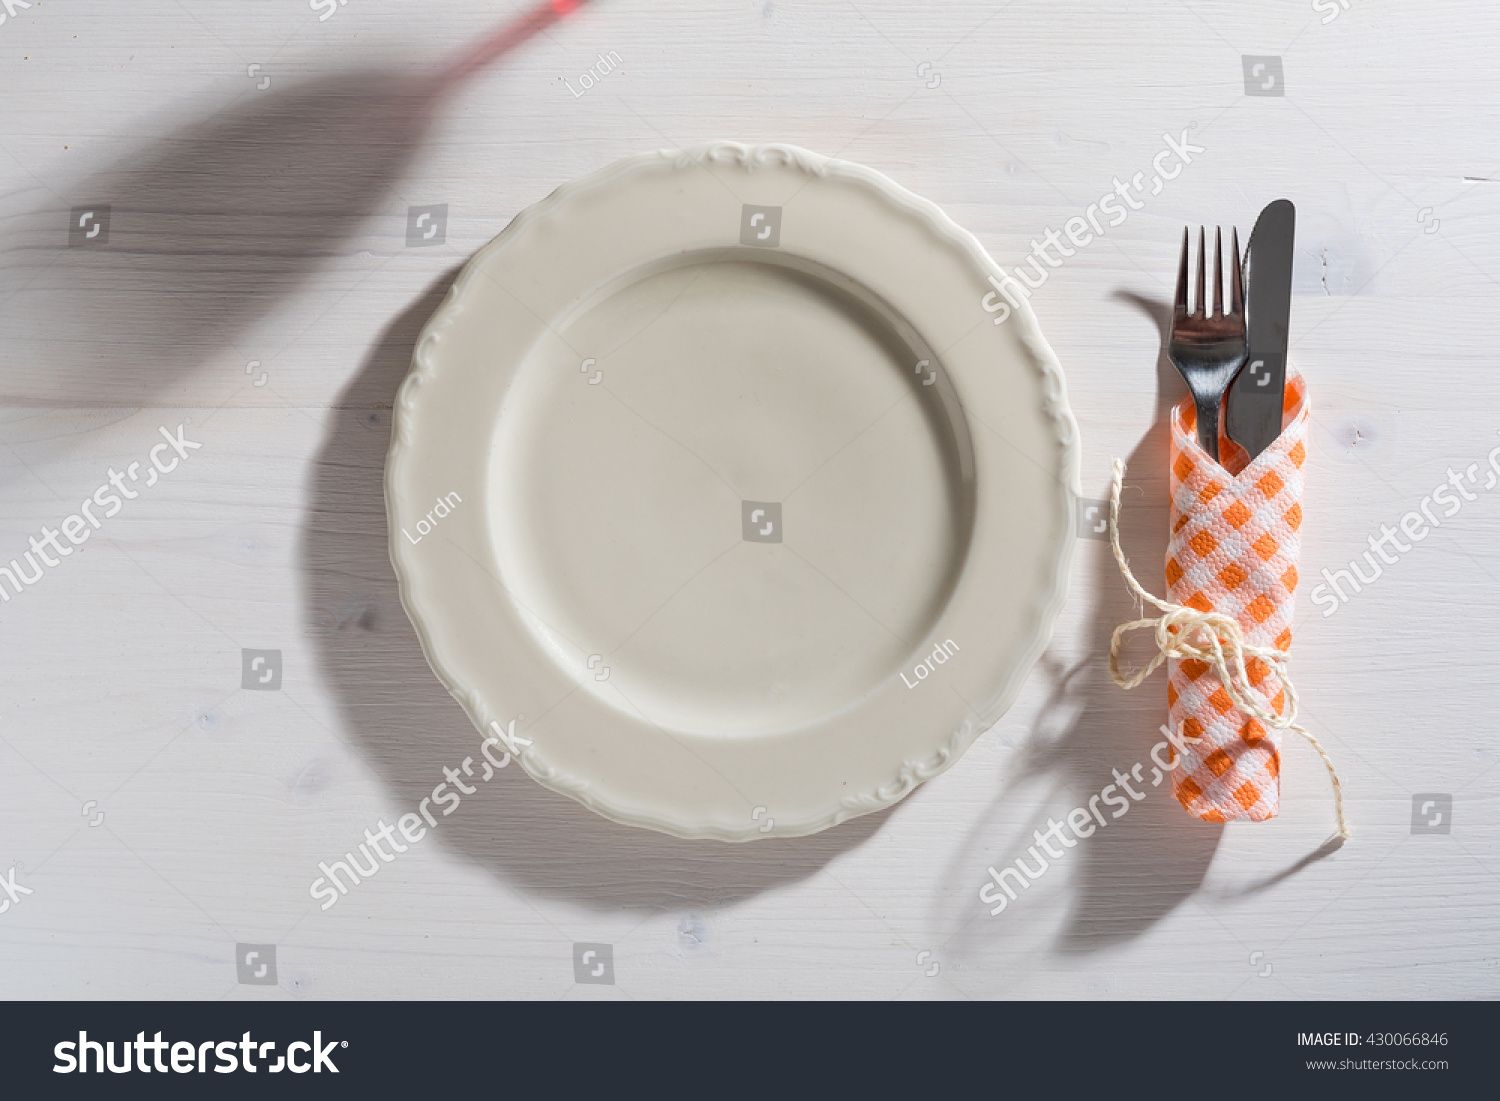 Restaurant table setup - Mediterranean Restaurant Table Setup With Empty Plate And Cutlery